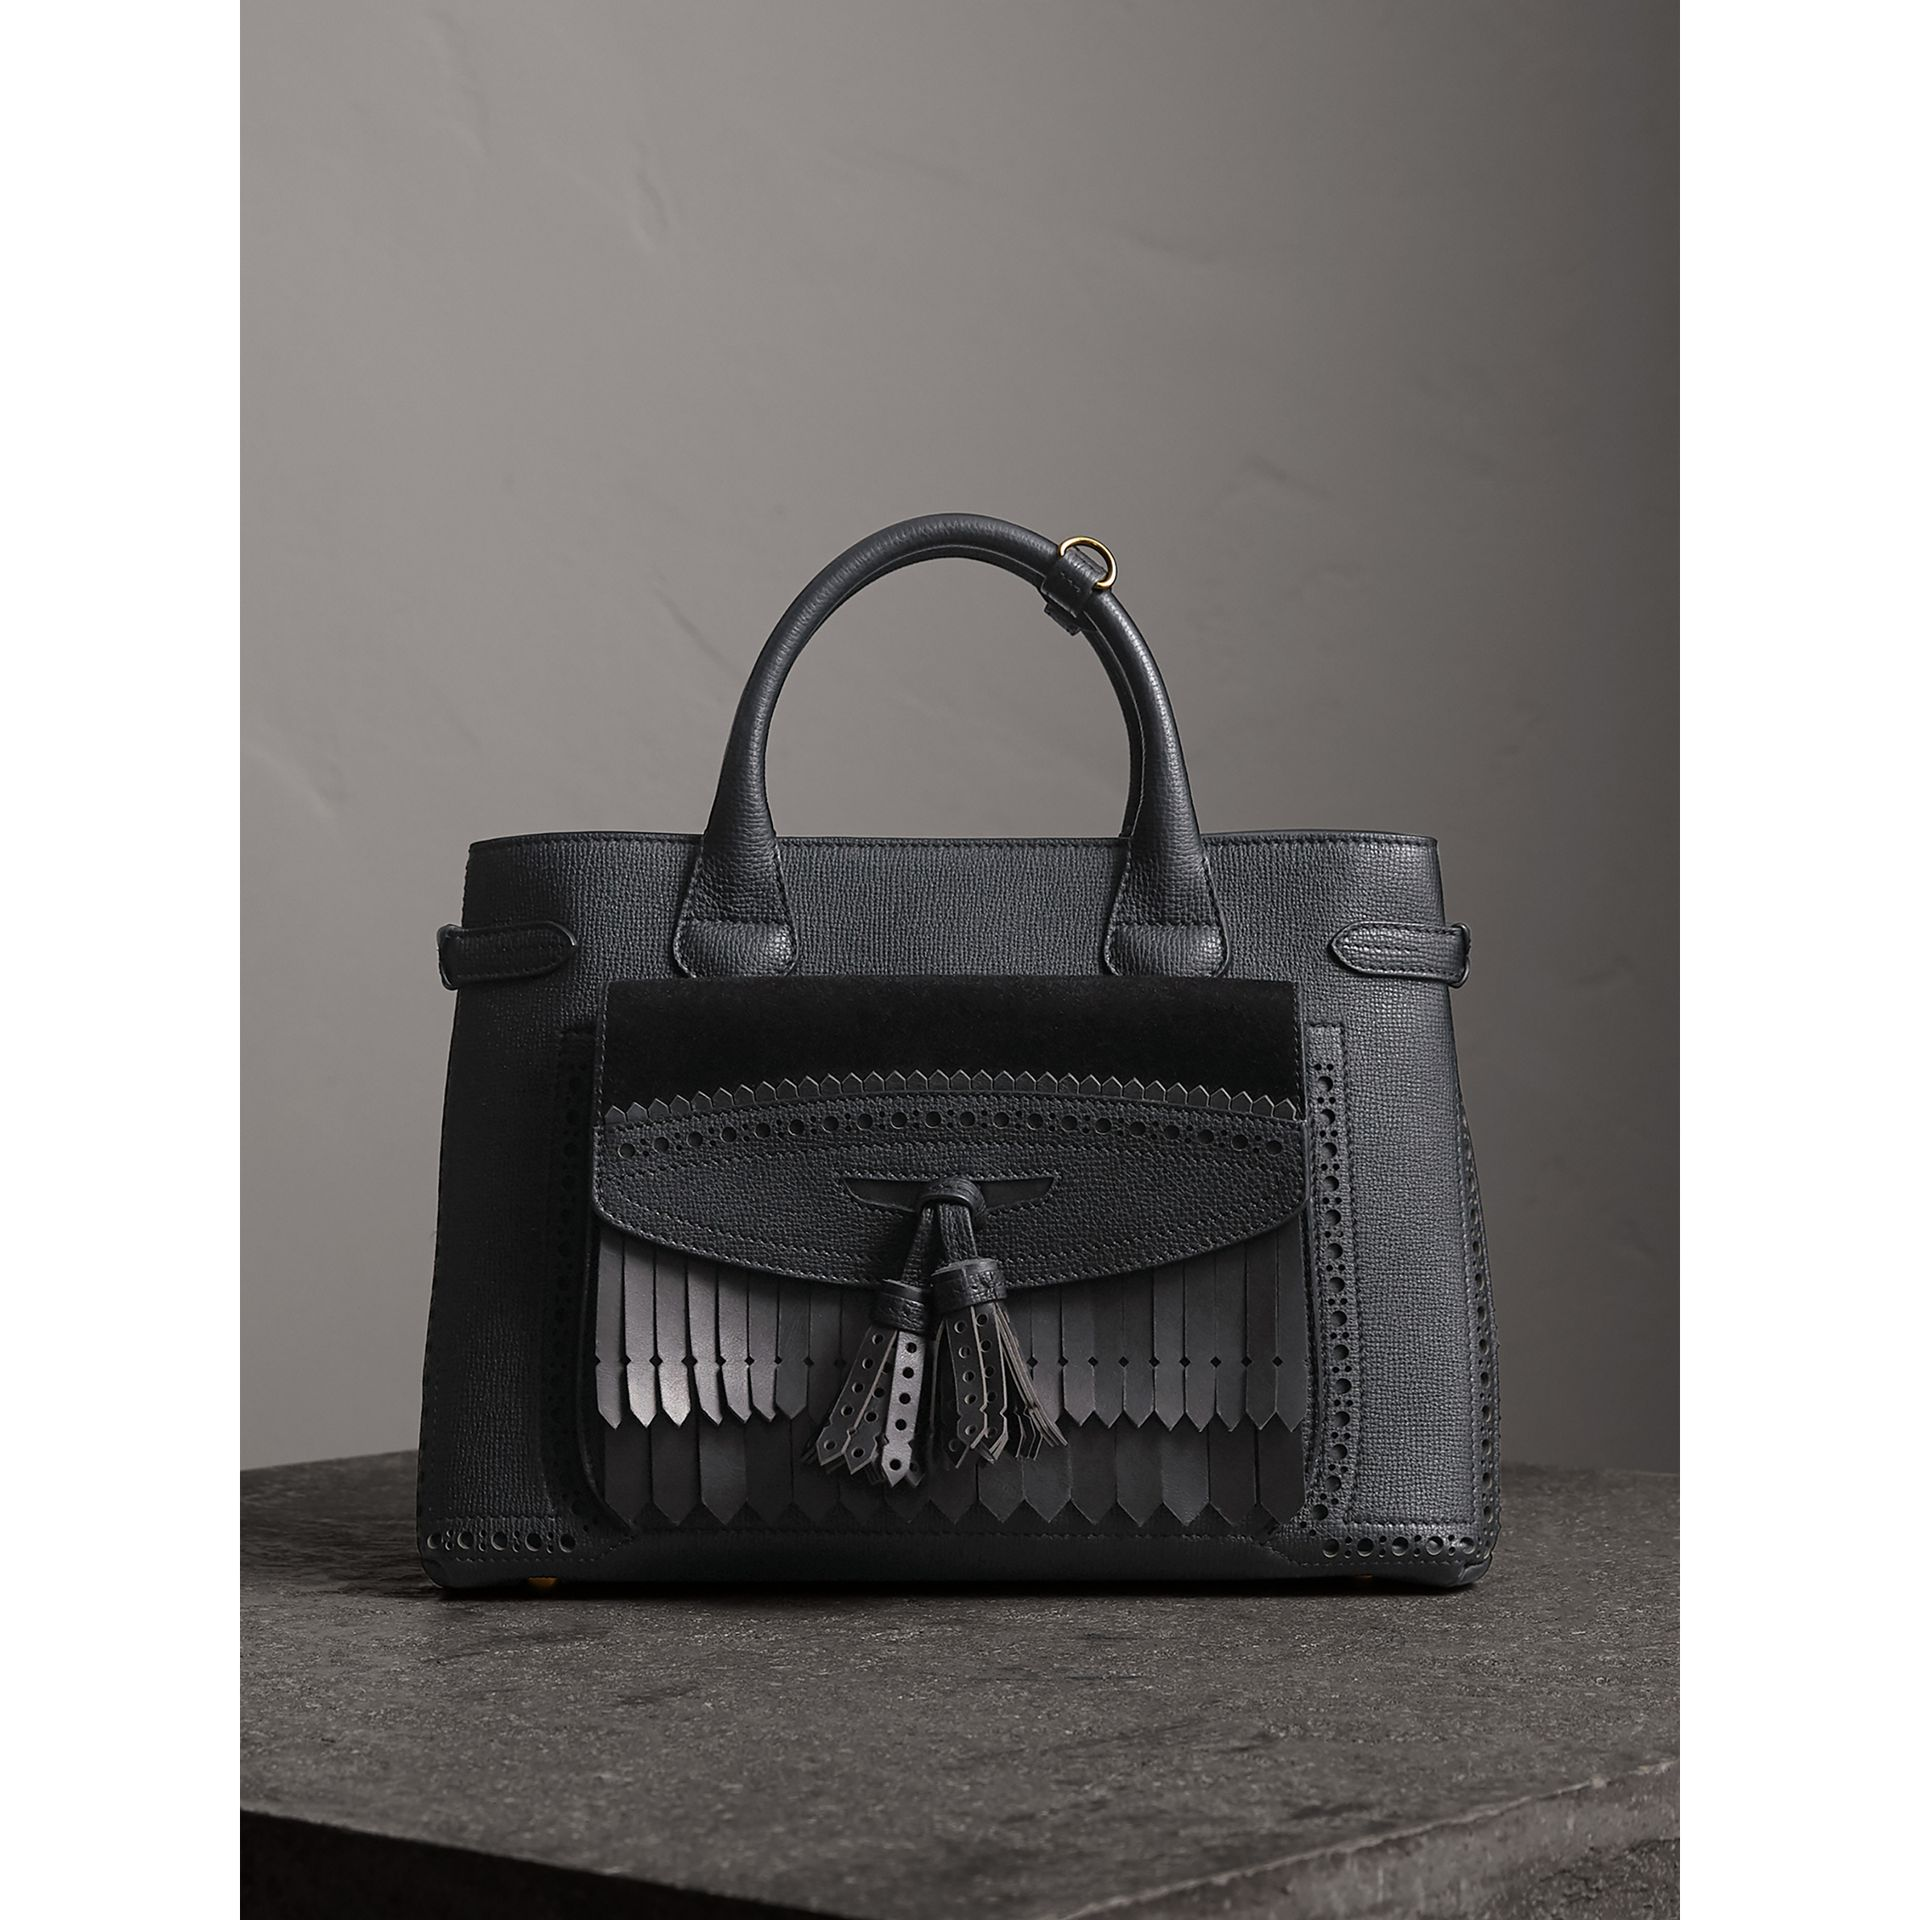 Sac The Banner moyen de style richelieu (Noir) - Femme | Burberry Canada - photo de la galerie 7